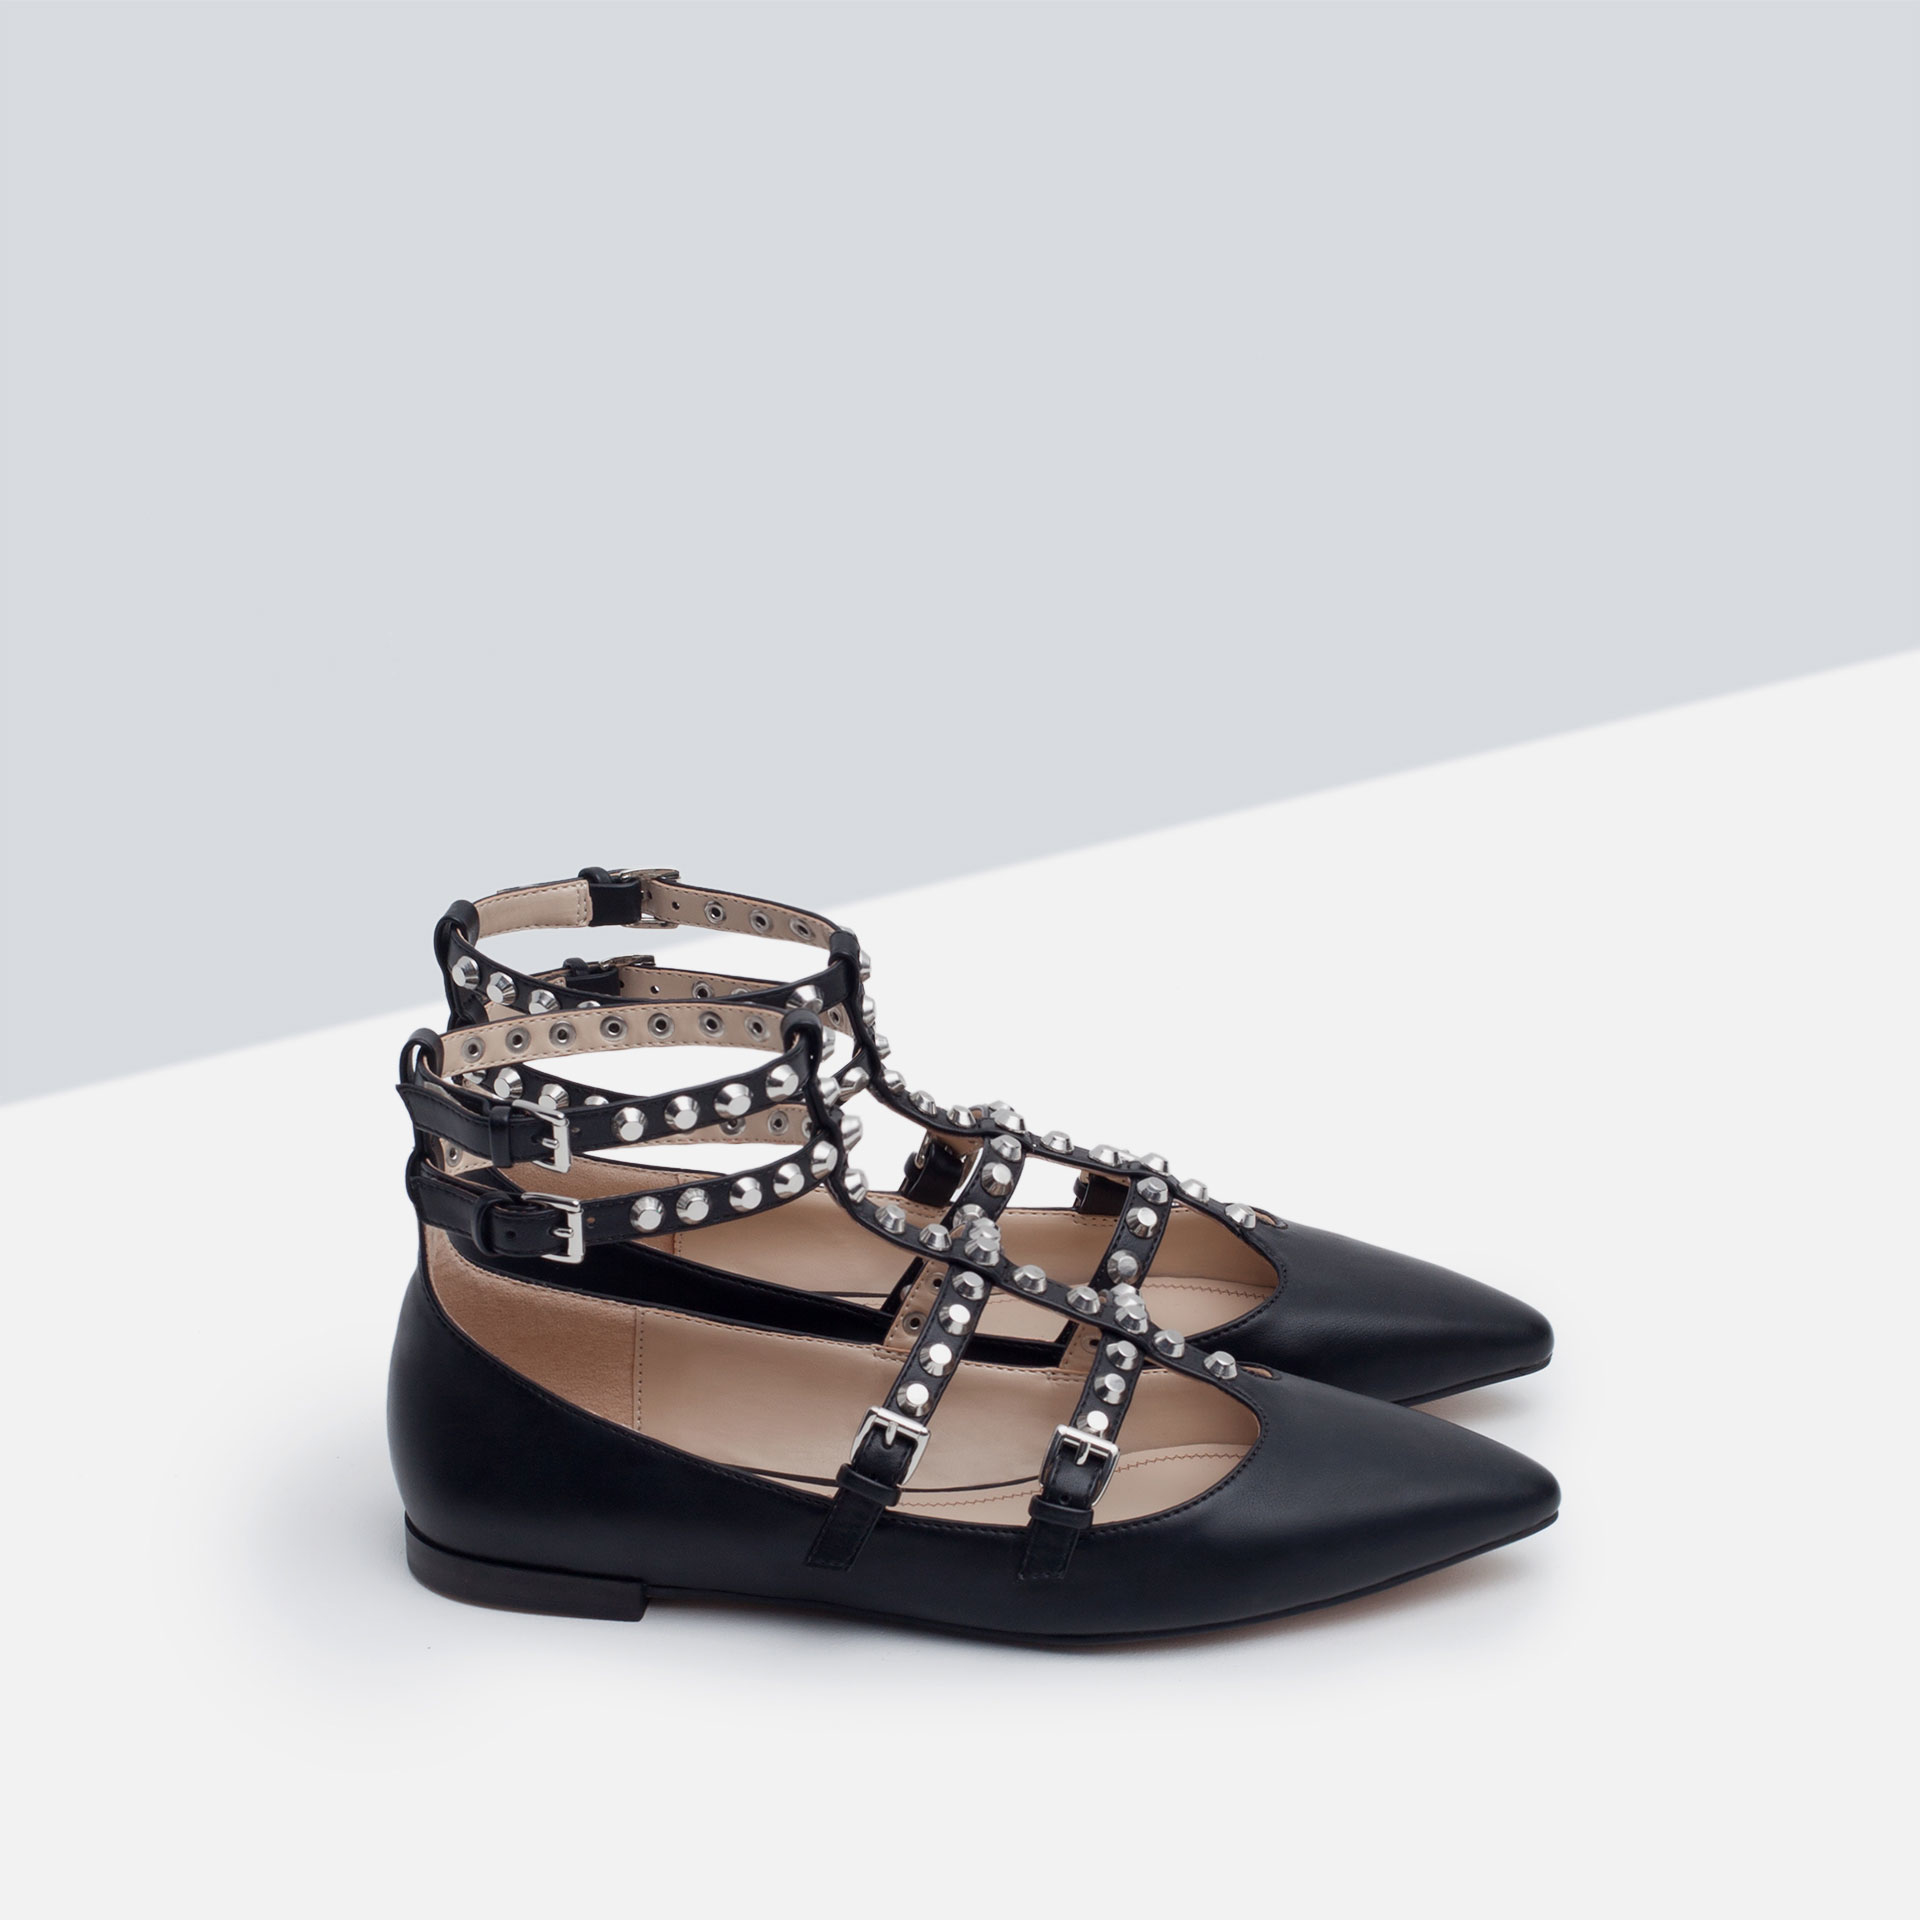 Our flat shoes for women come in black, white, silver and other colors with cute trendy designs and fast shipping services. Bee Studded Pointed Toe Women's Slip On Flats. Flats shoes make us comfortable when walking and give us agility. We all love flat shoes.